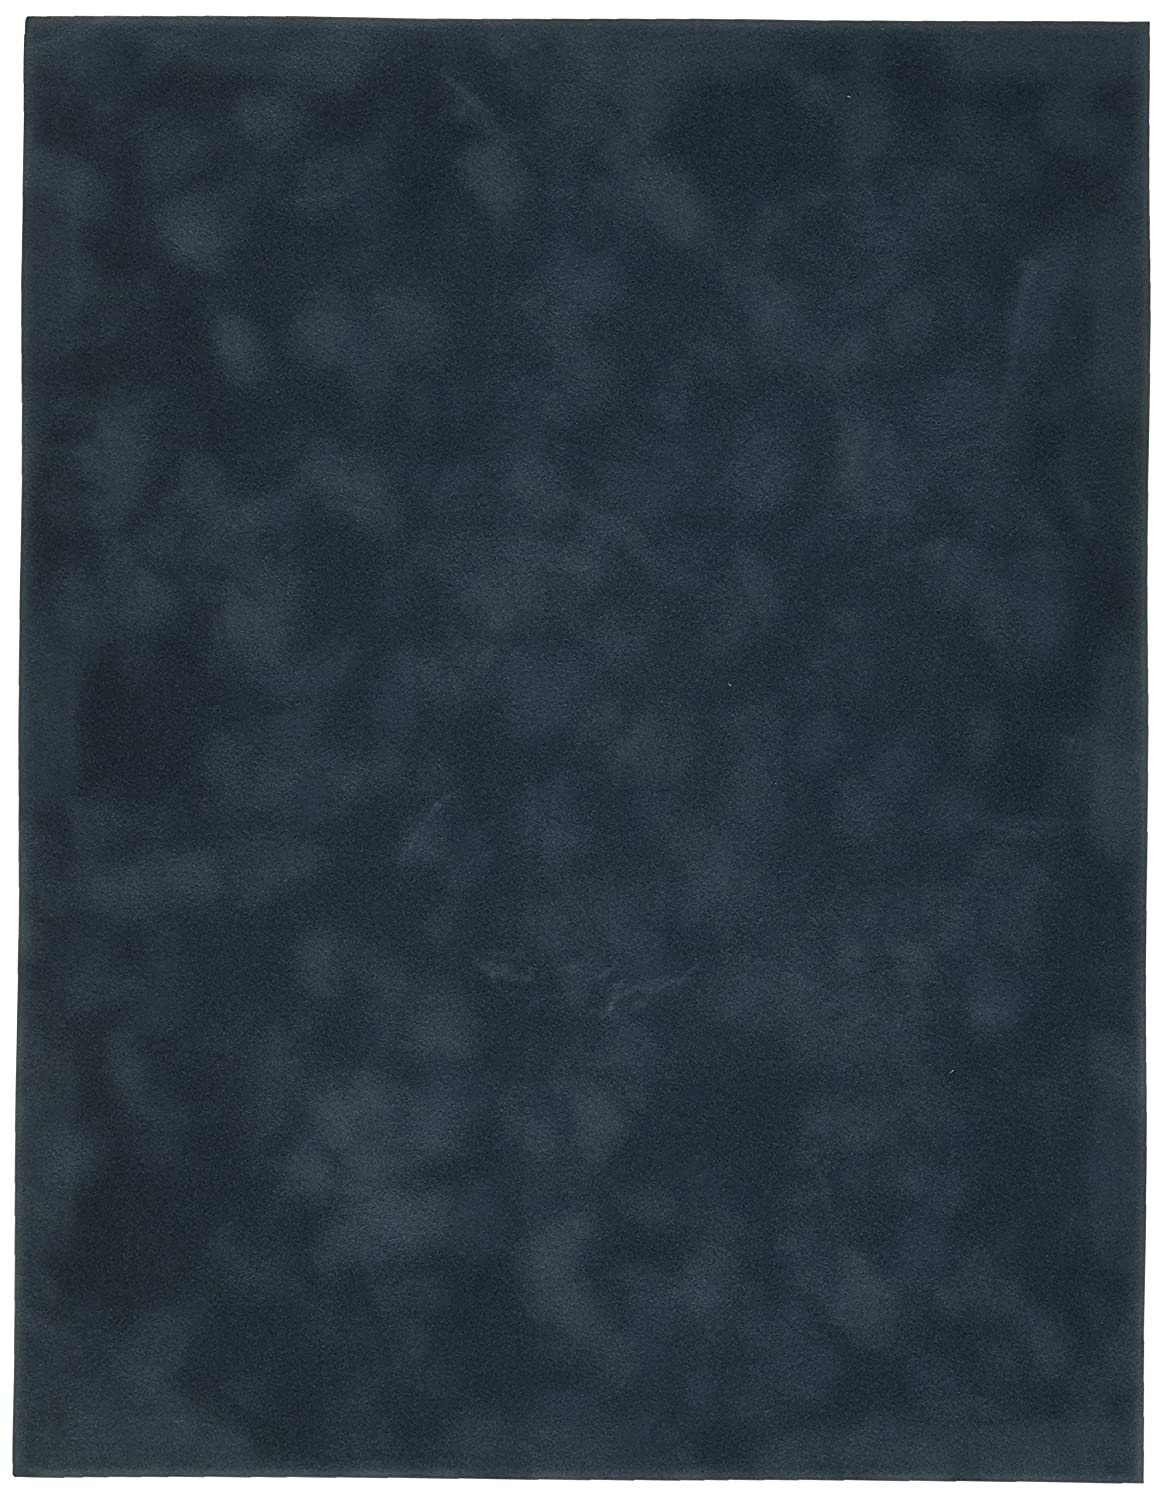 Sew Easy Industries 12-Sheet Velvet Paper, 8.5 by 11-Inch, Mallard